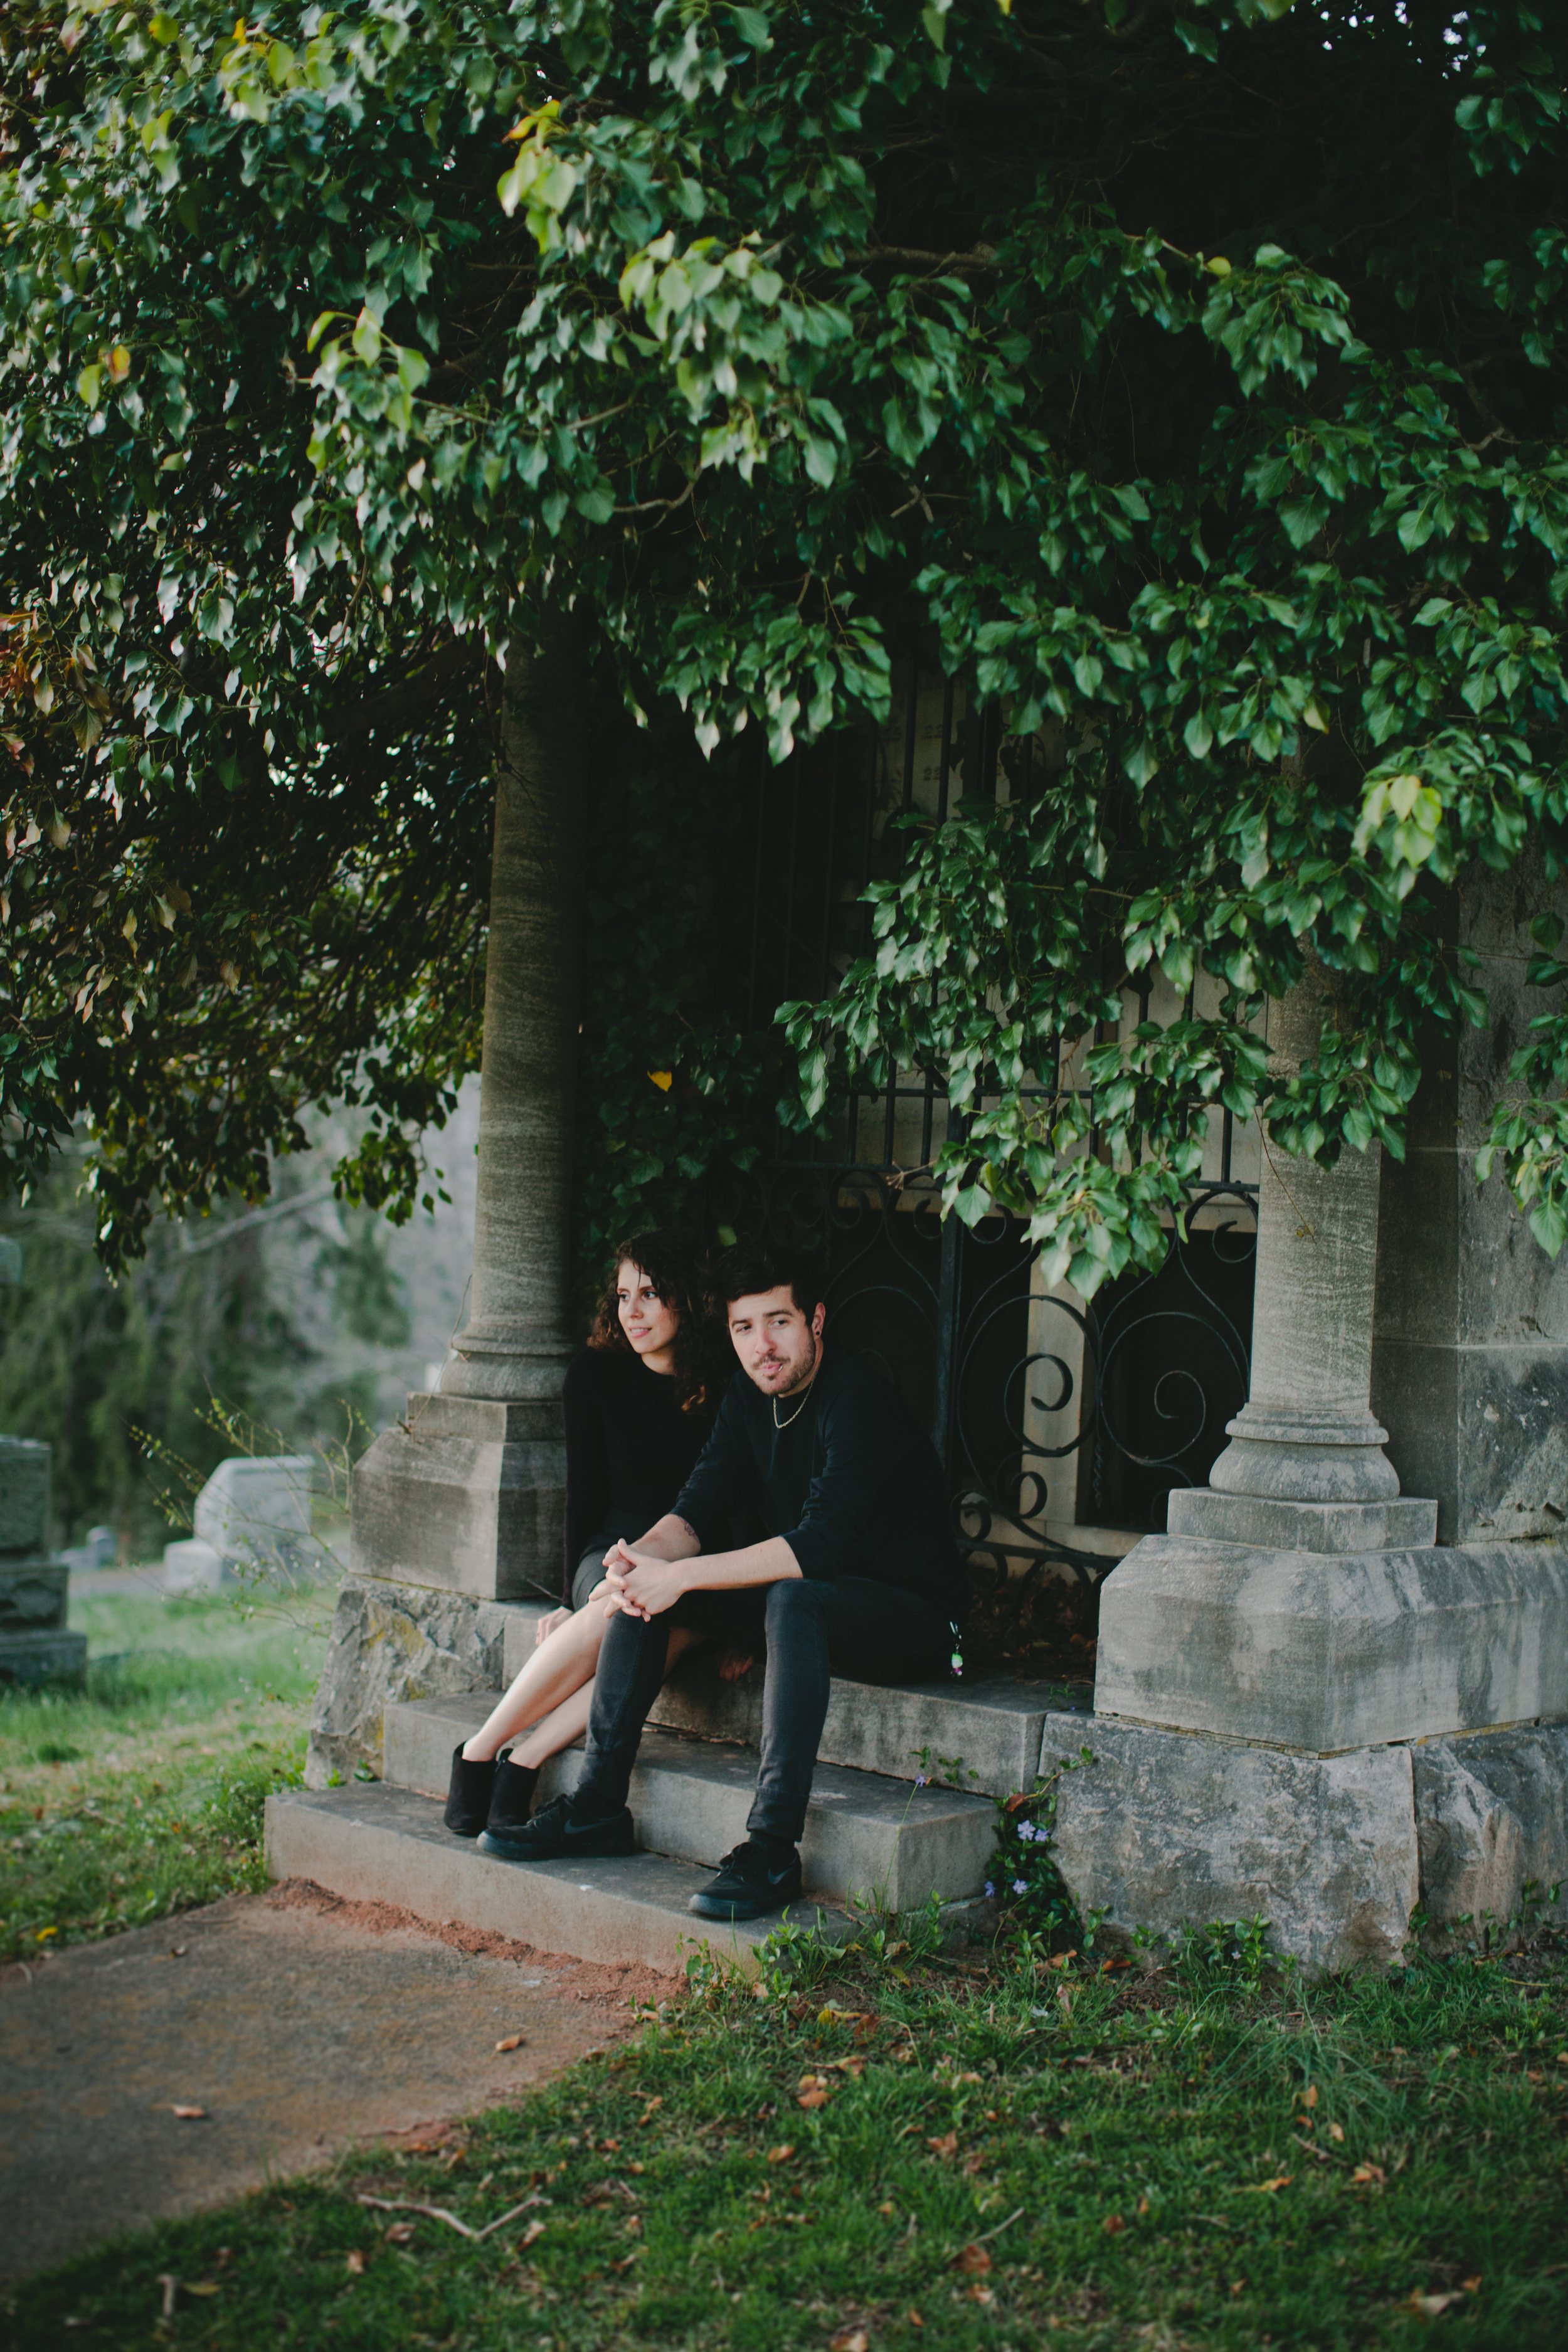 alisha-matthew-cemetery-wedding-95.jpg